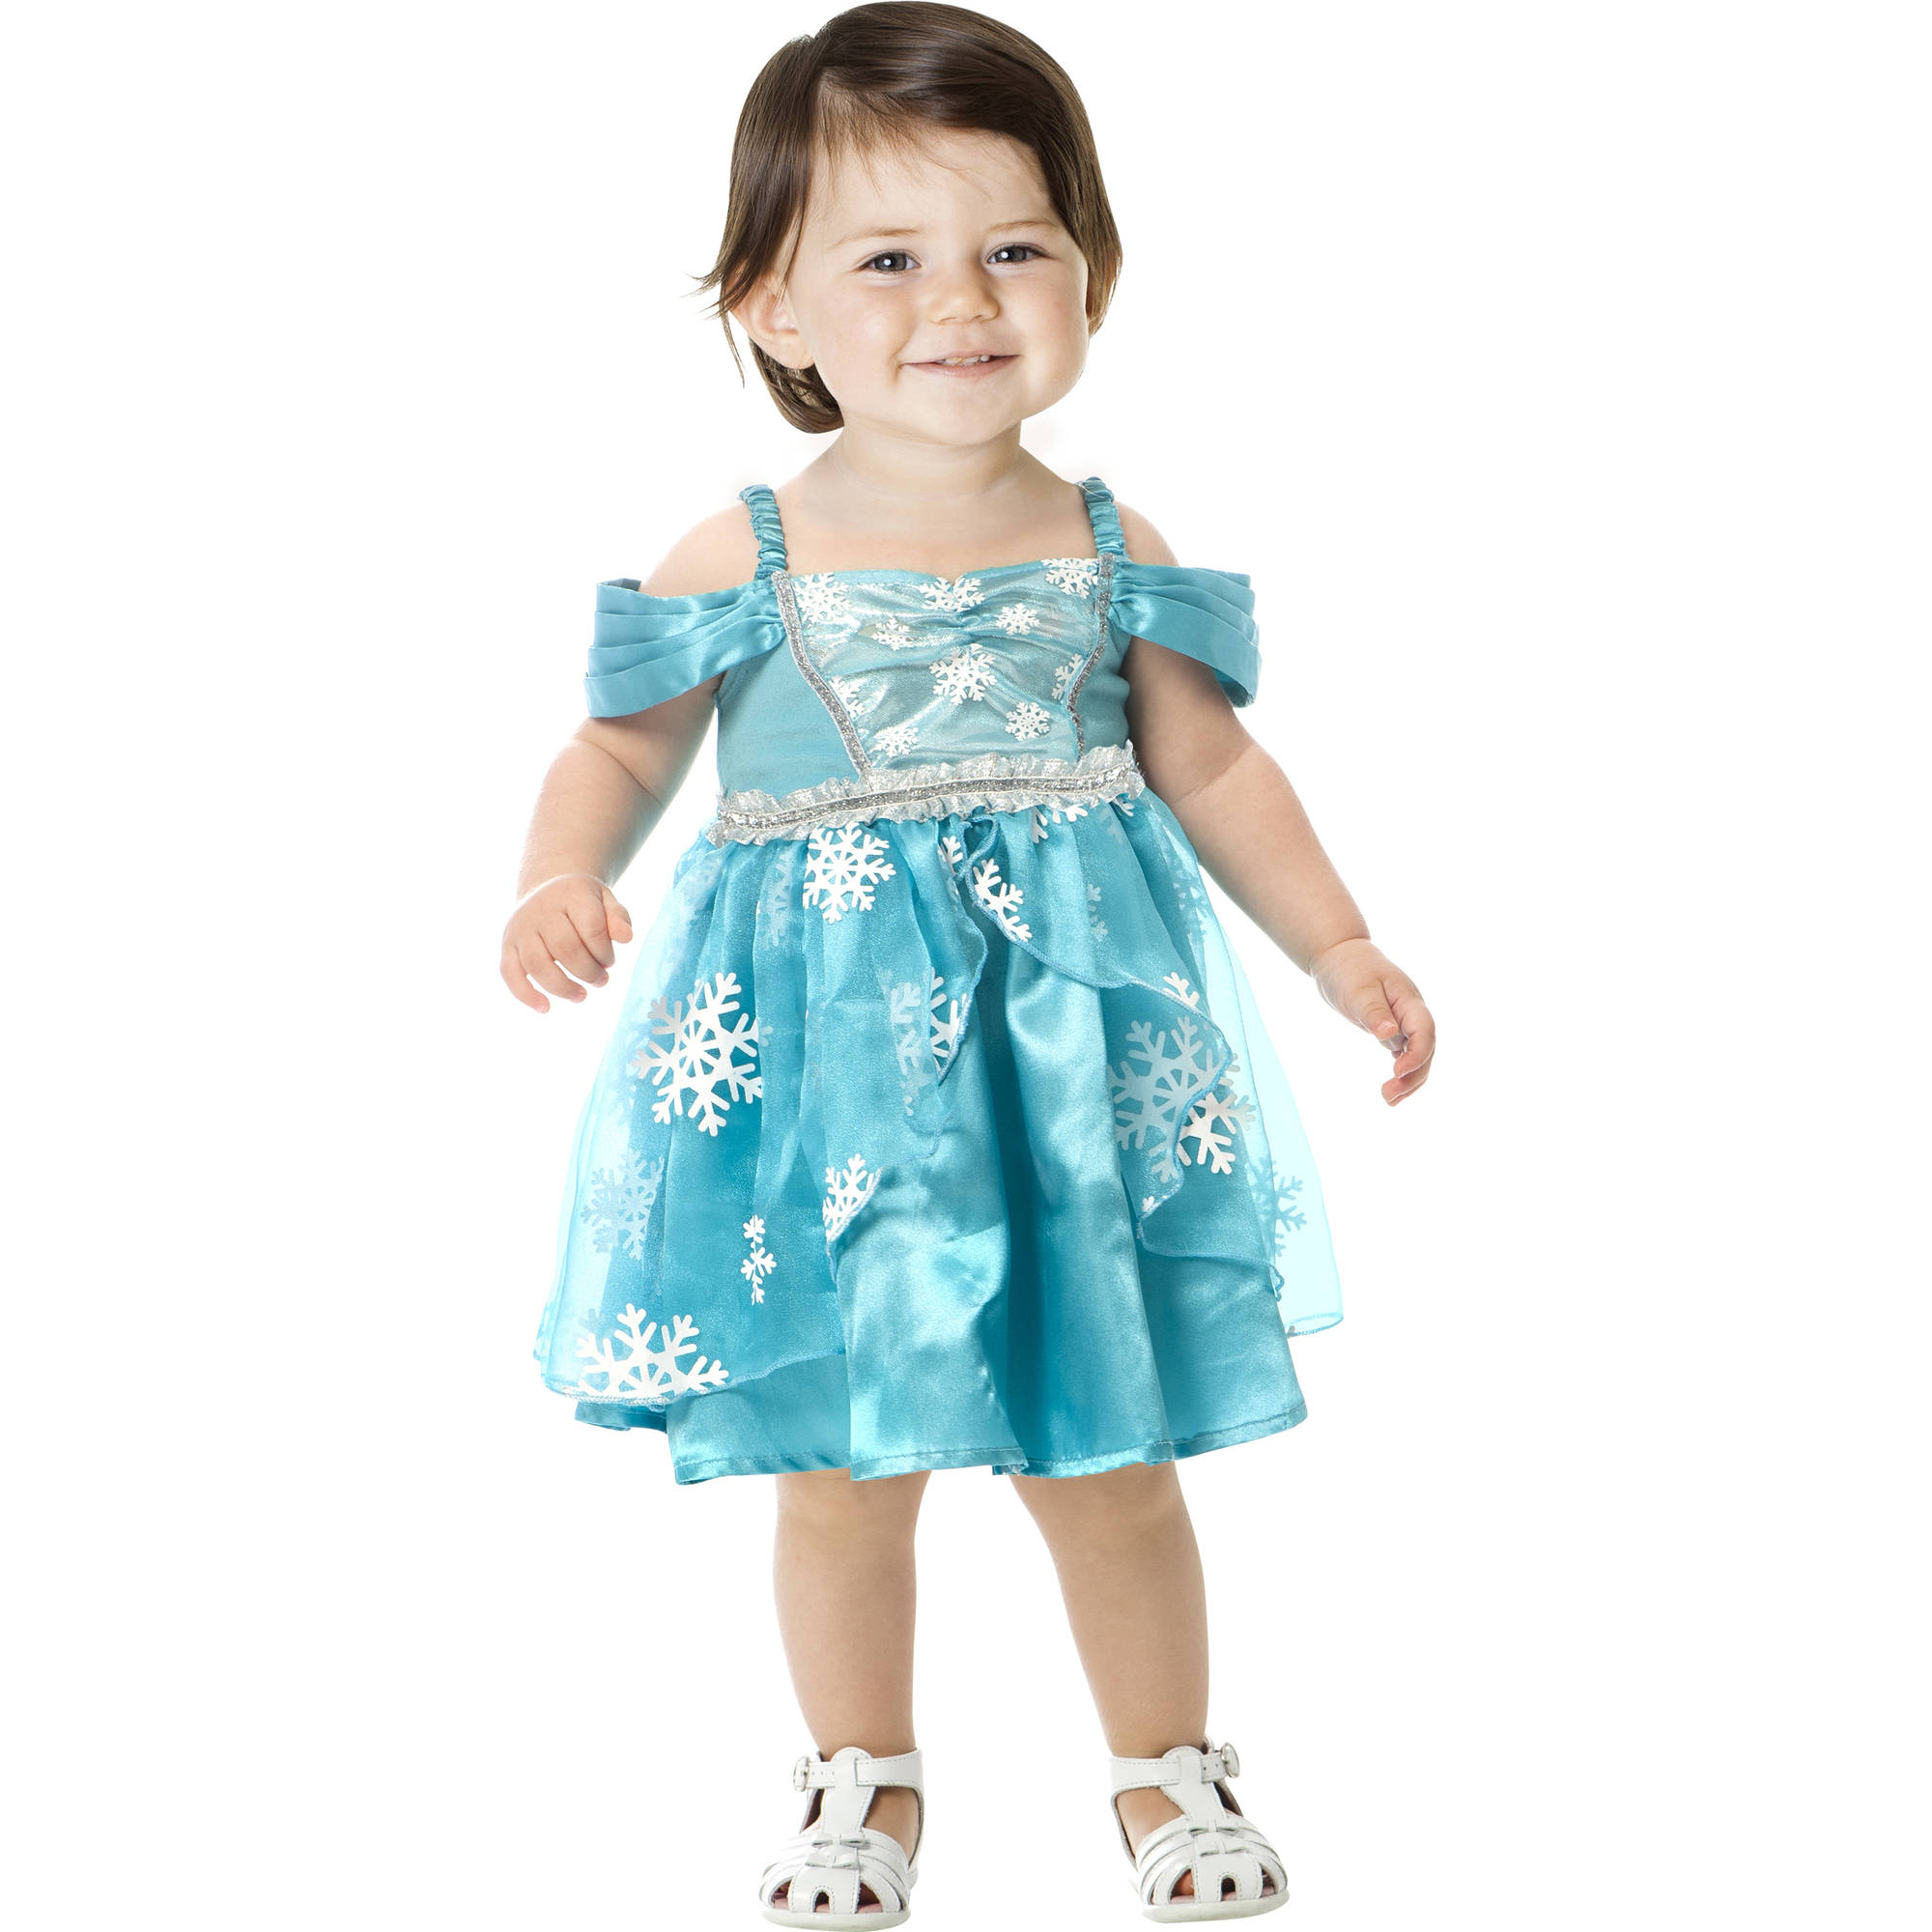 Snowflake Princess Toddler Halloween Dress Up / Role Play Costume